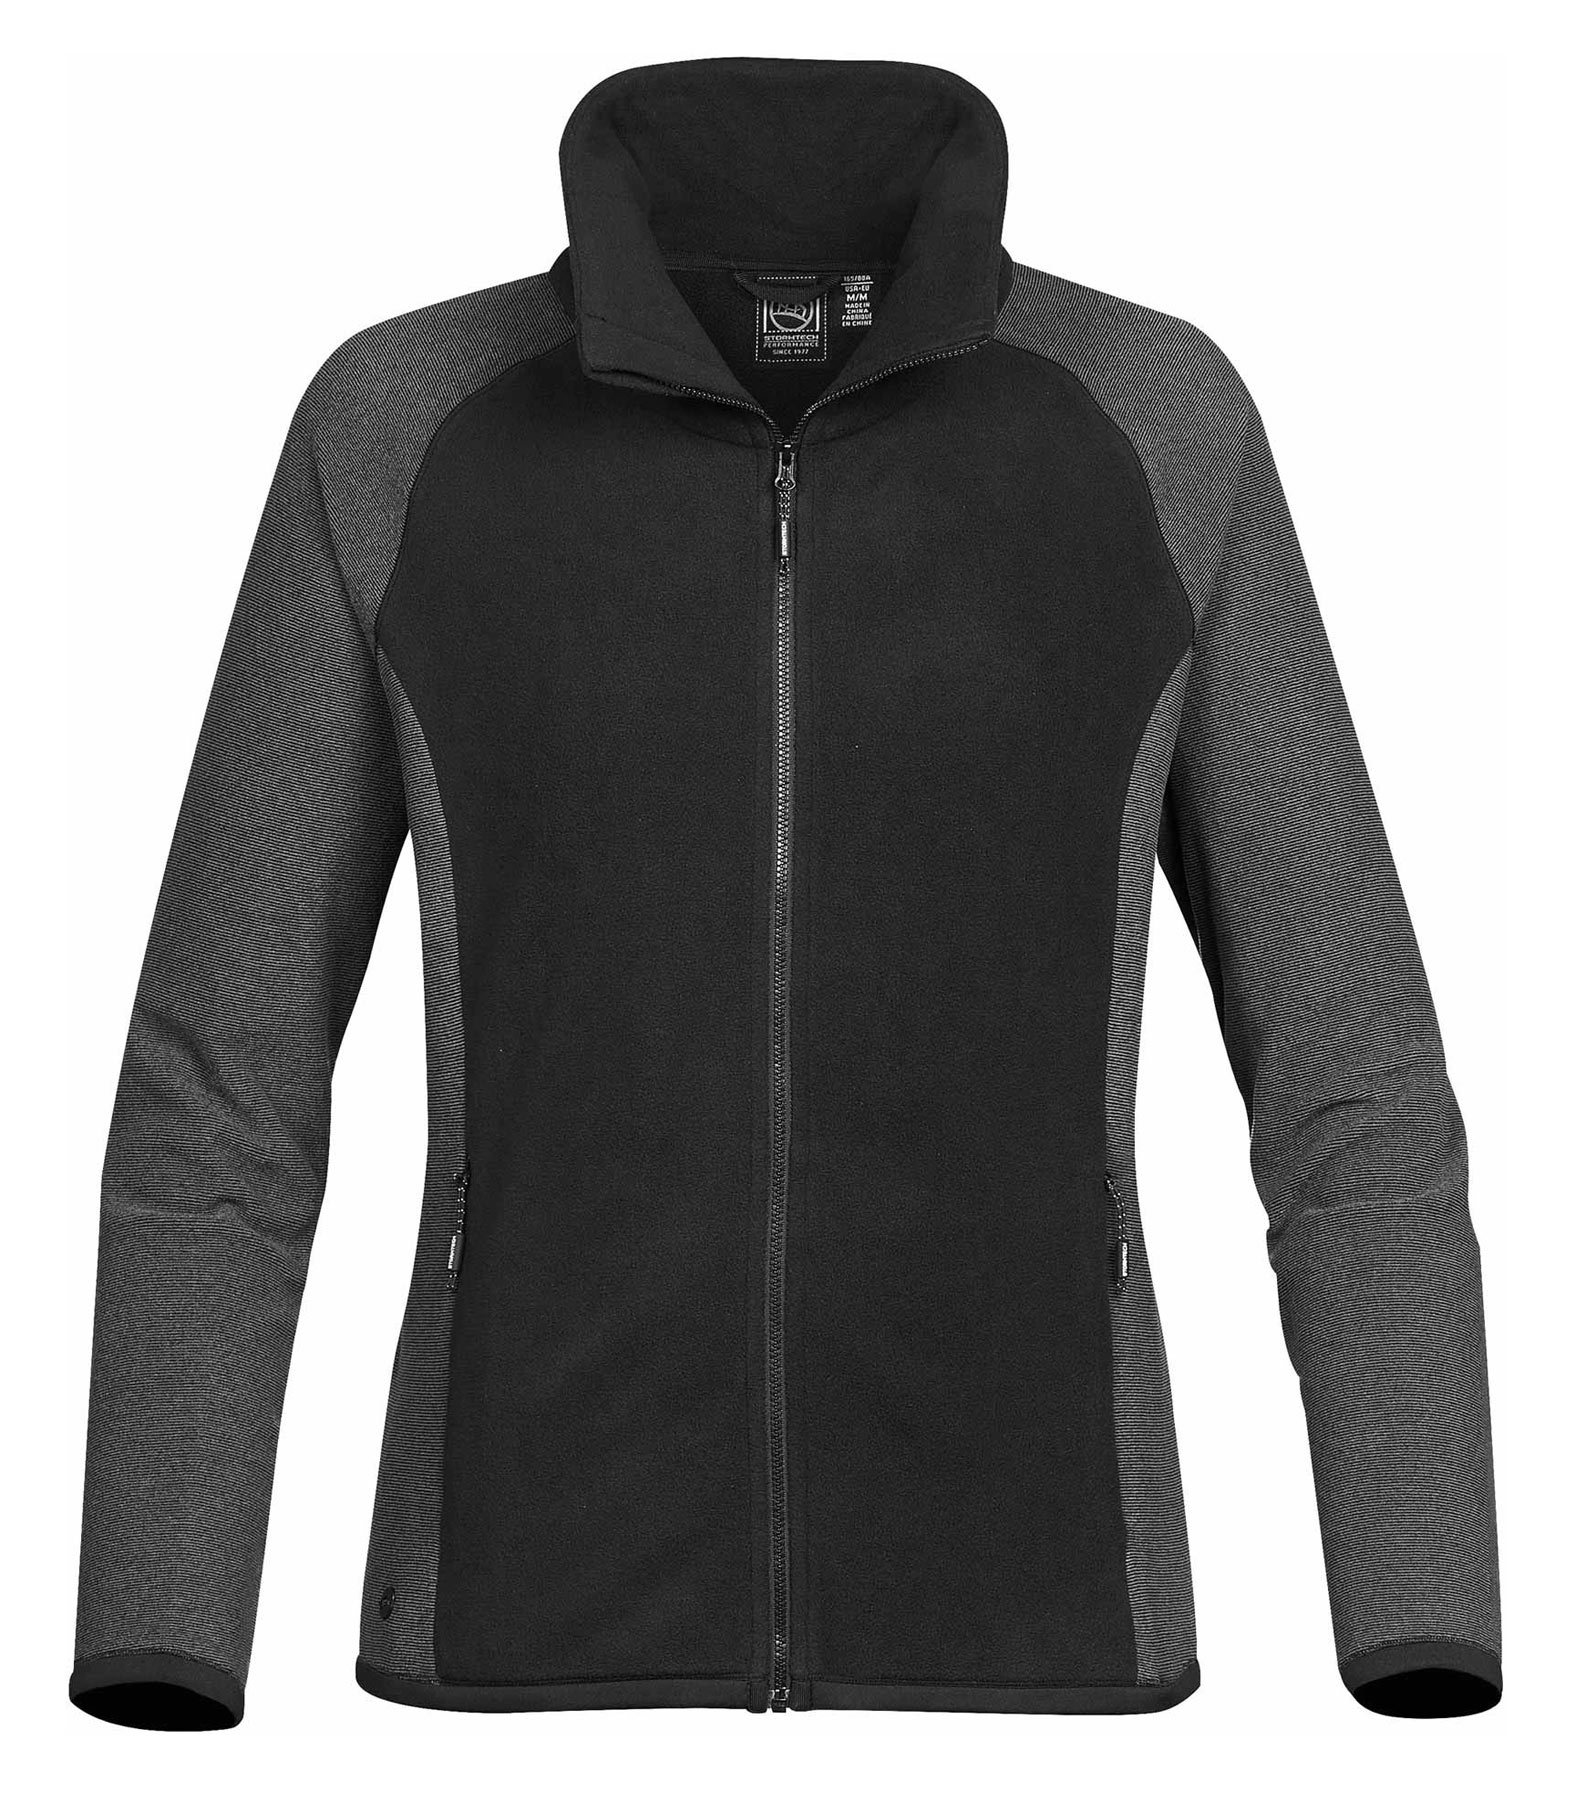 Womens Impact Microfleece Jacket